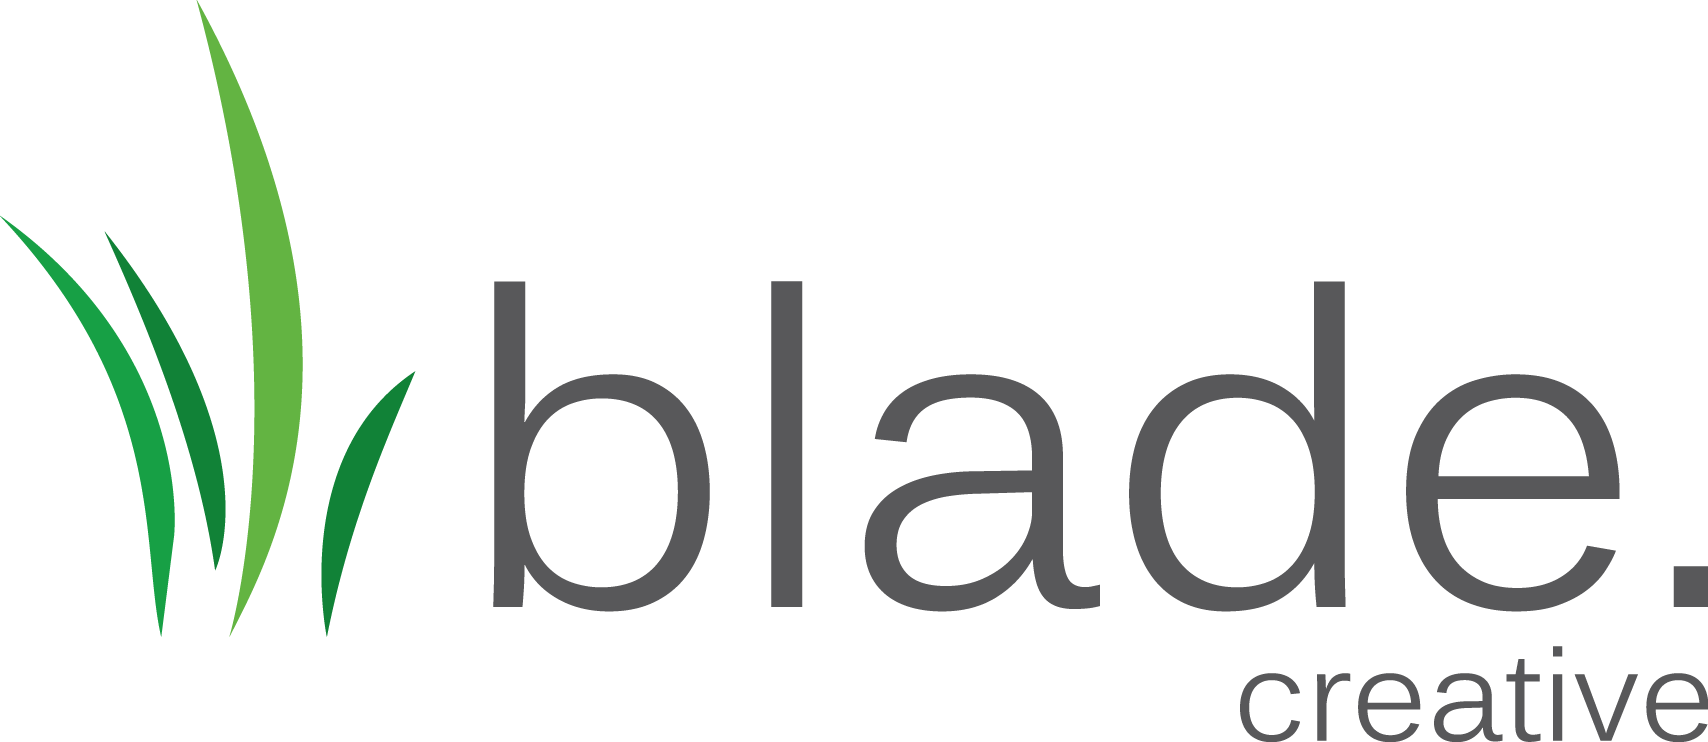 blade_creative.png